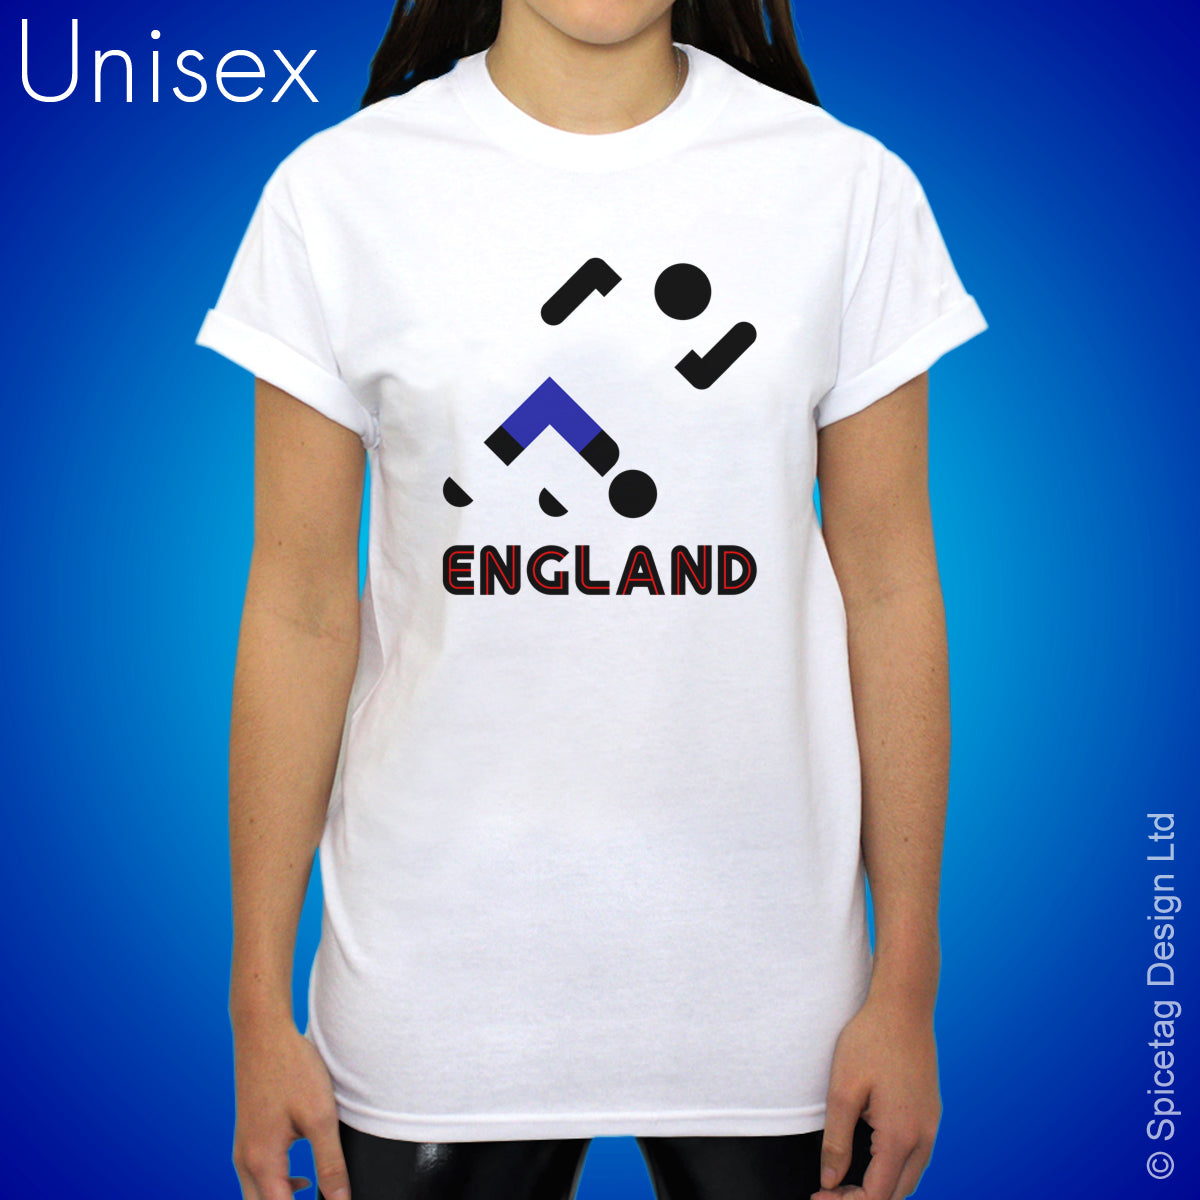 England Retro Football T-shirt